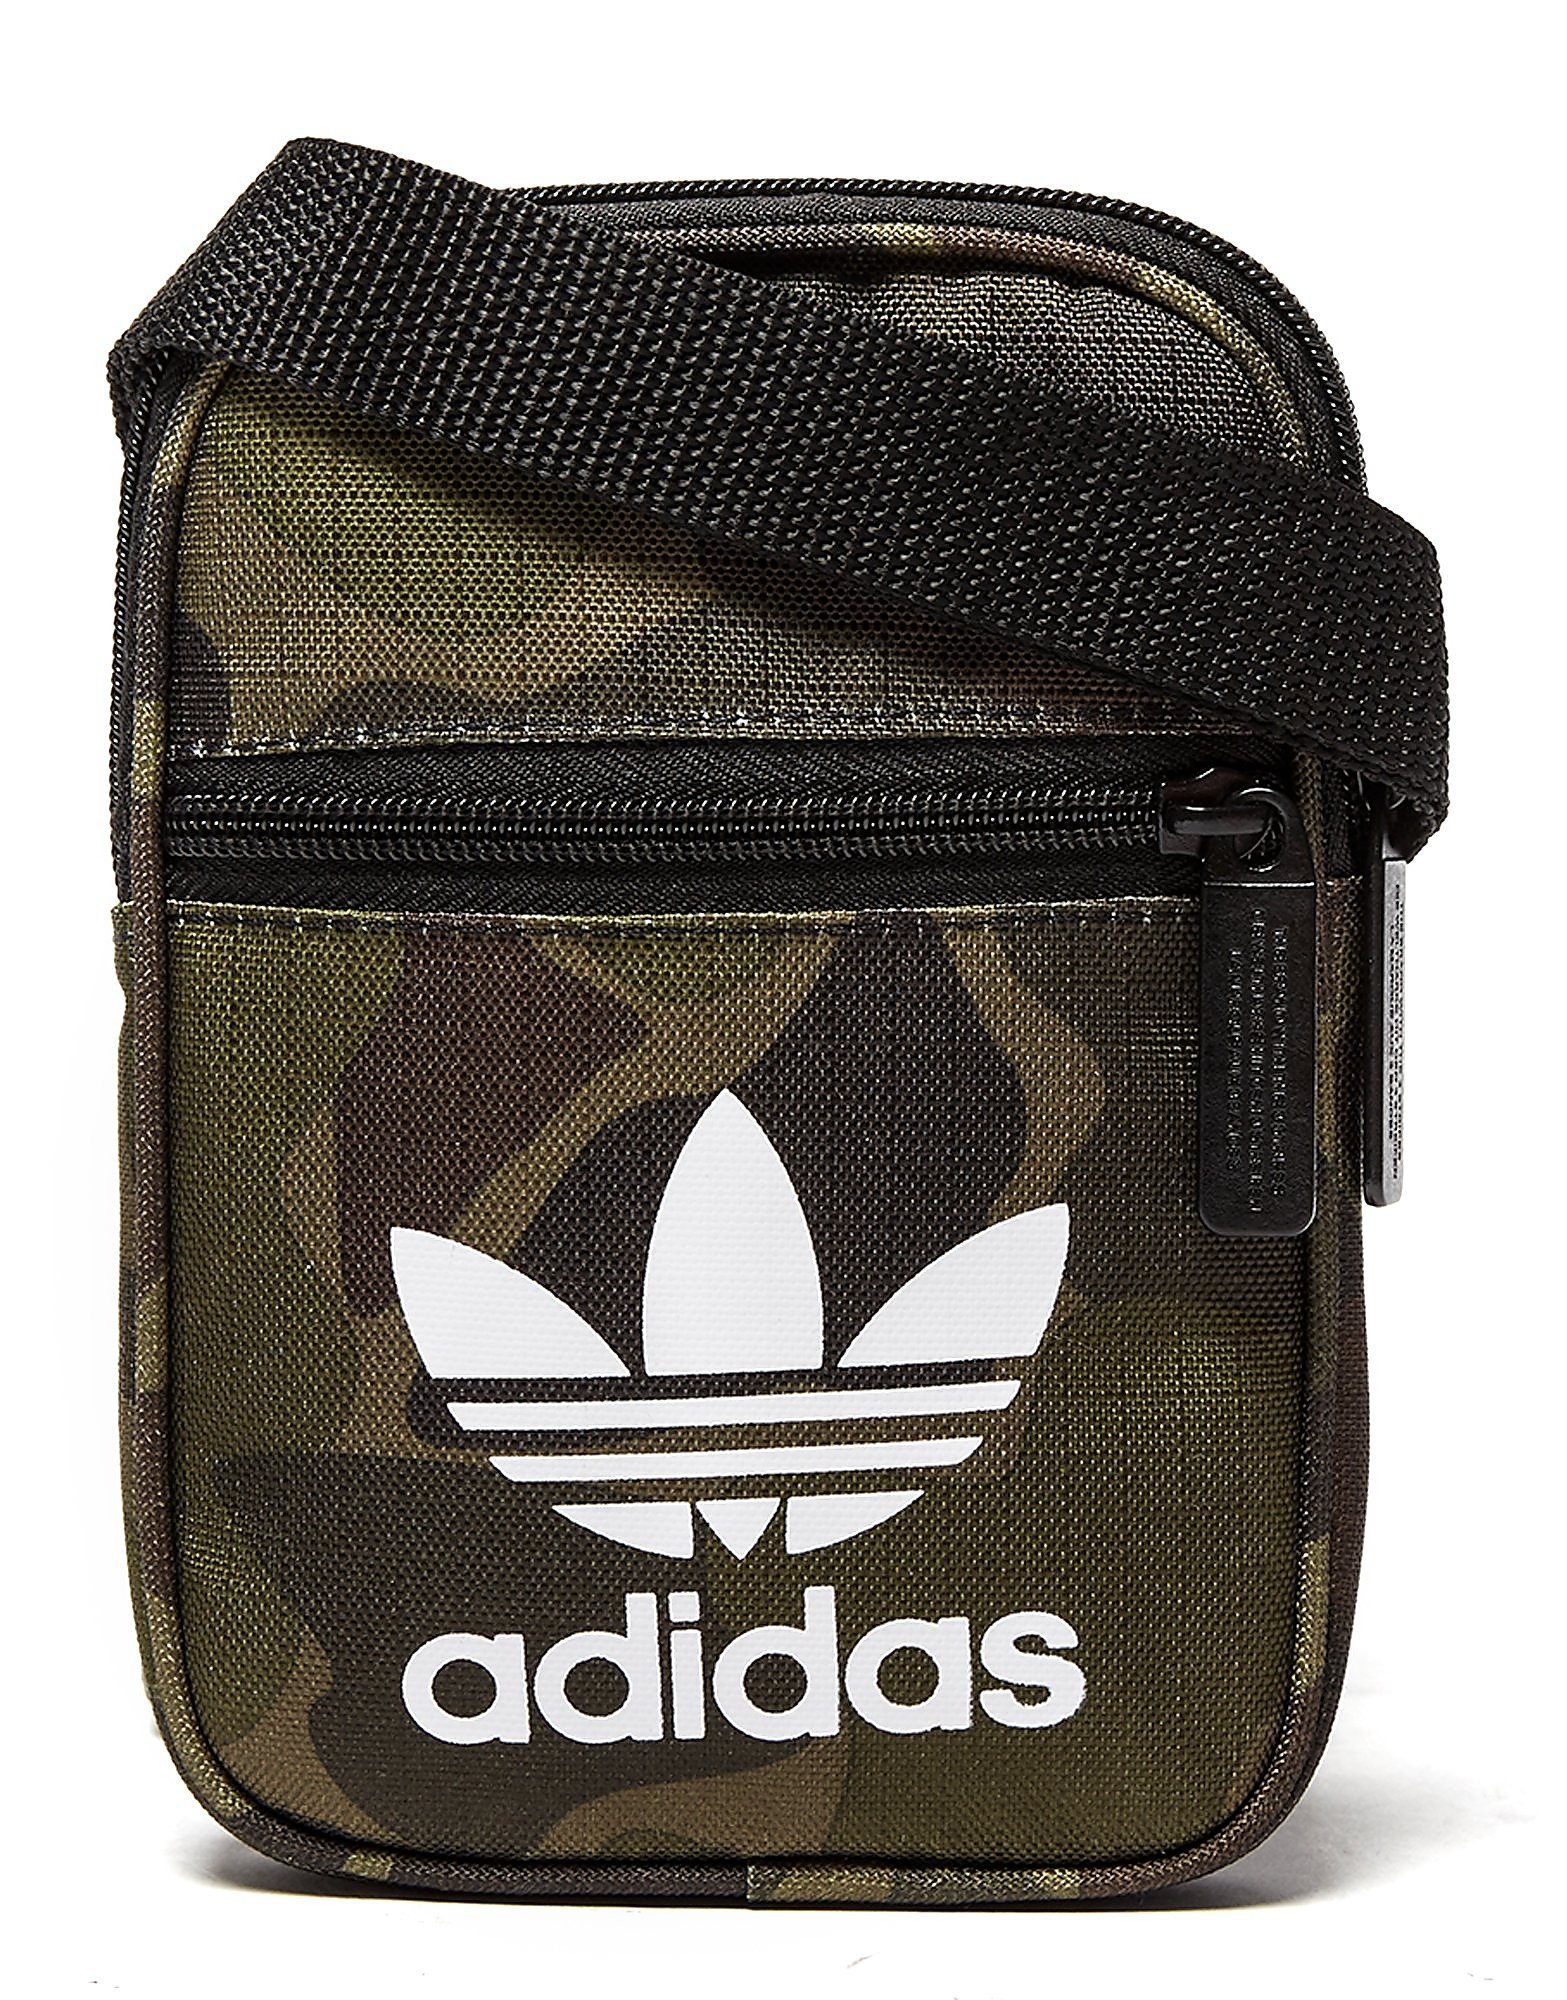 adidas Originals Festival Bag